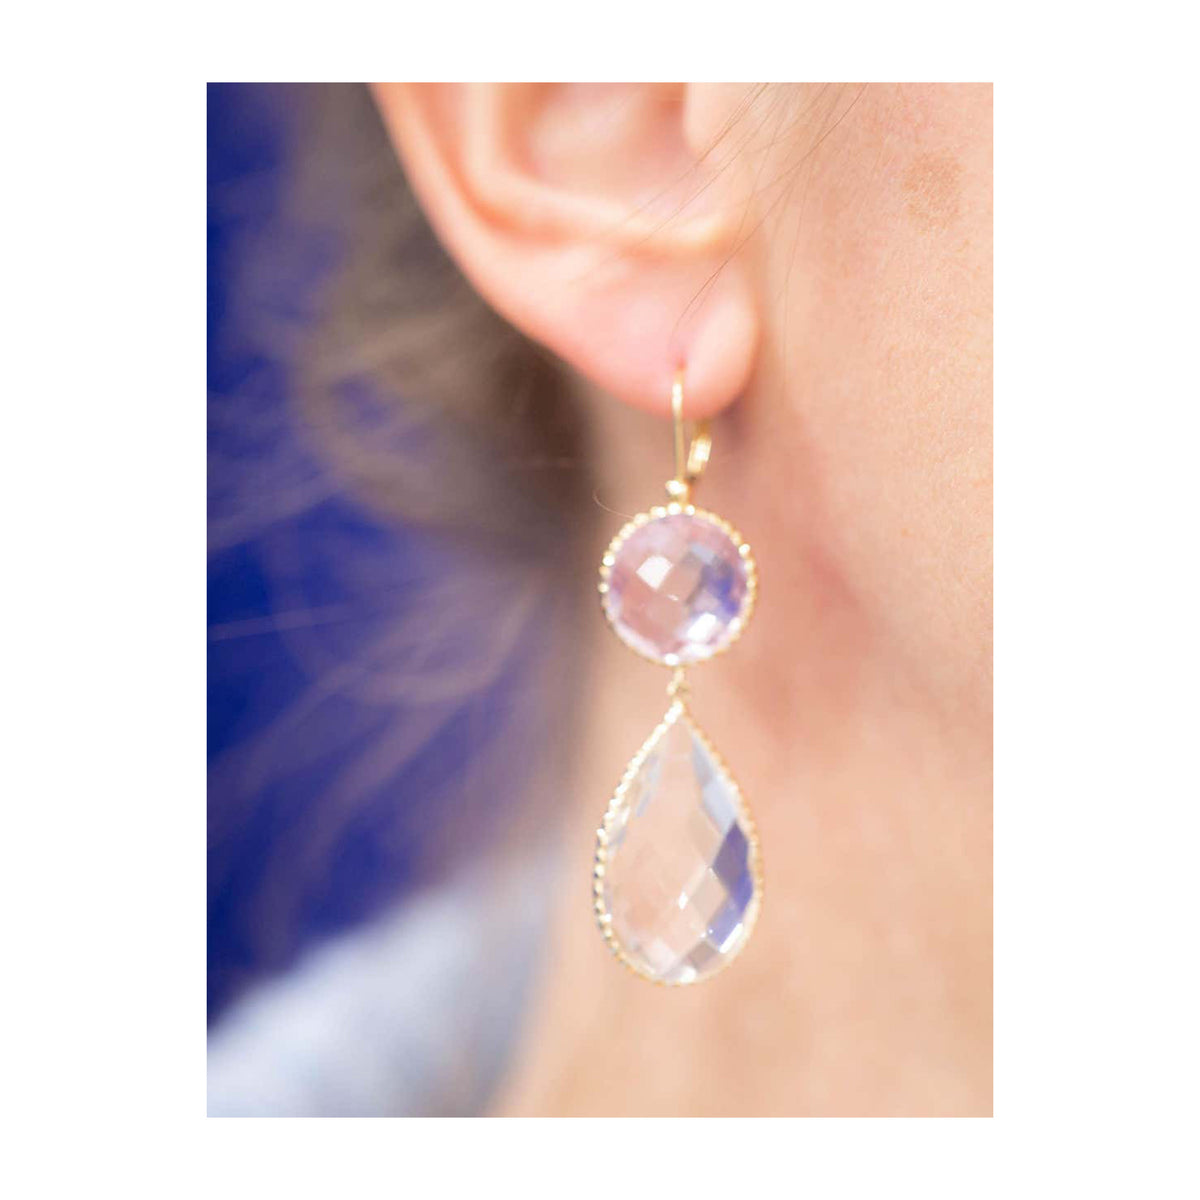 Pair of Light Amethyst and Rock Crystal Faceted Dangling Earrings in 14k Gold